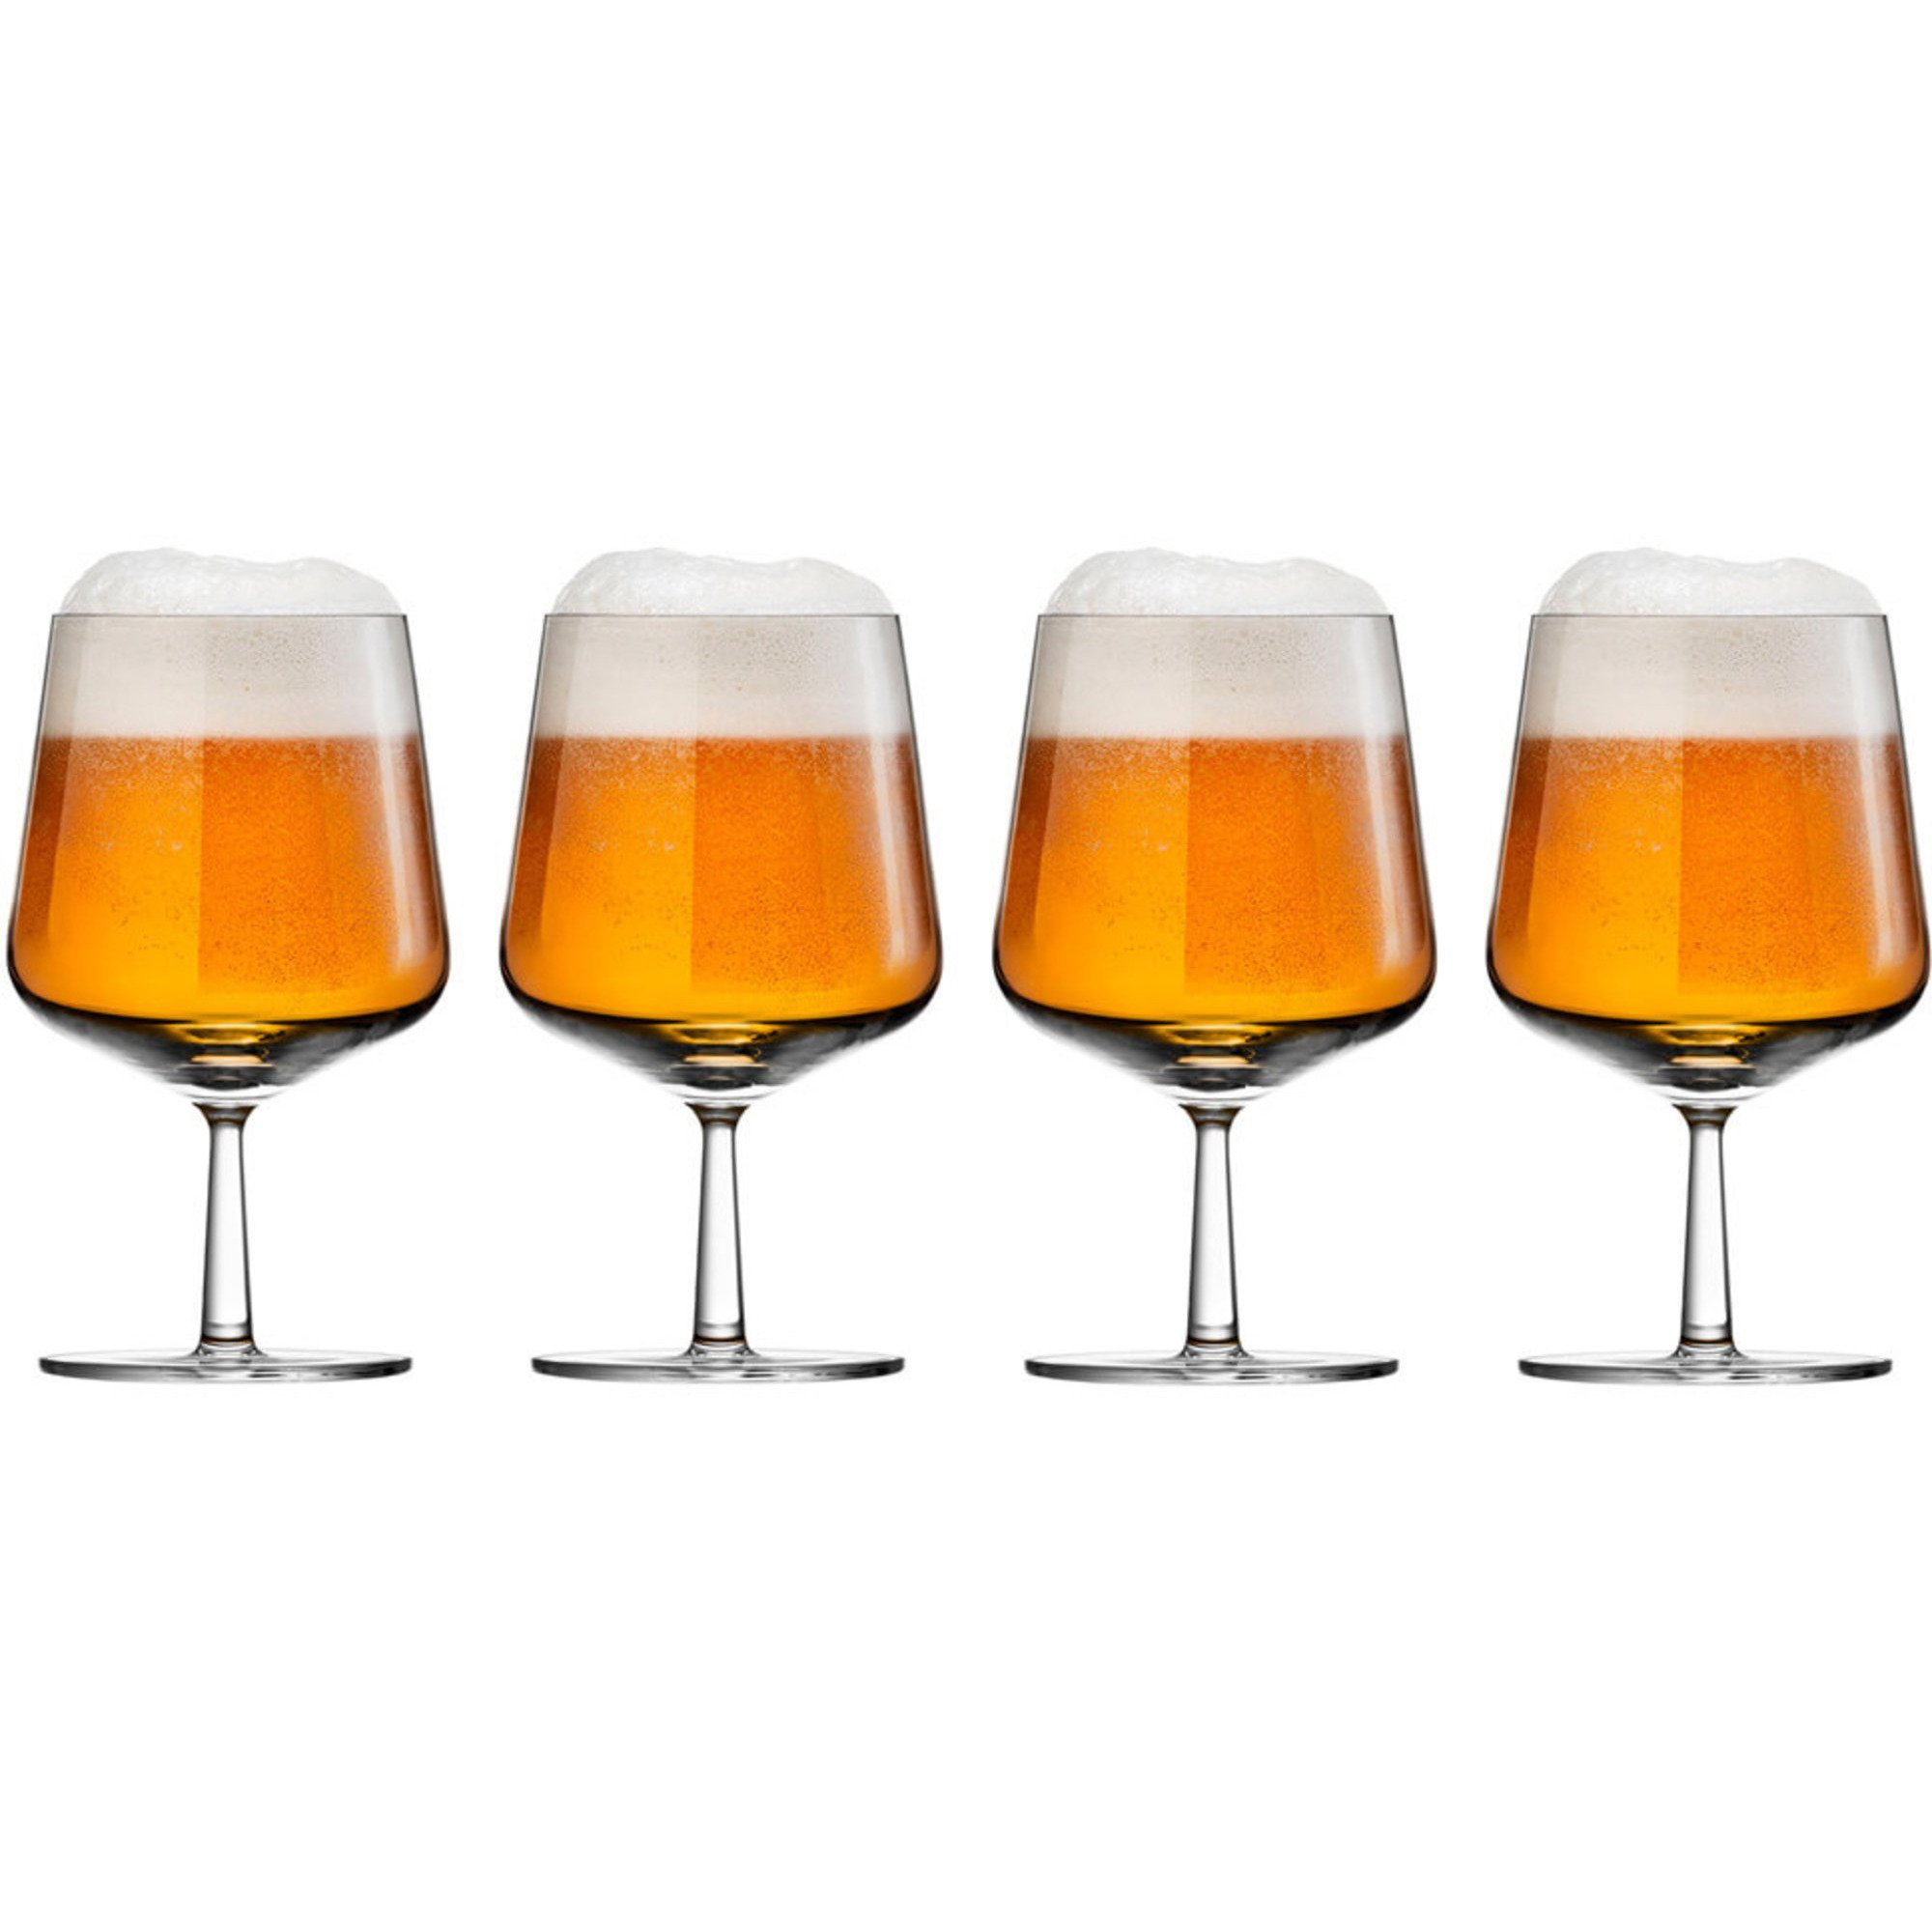 Iittala Essence Ölglas 48 cl 4-pack